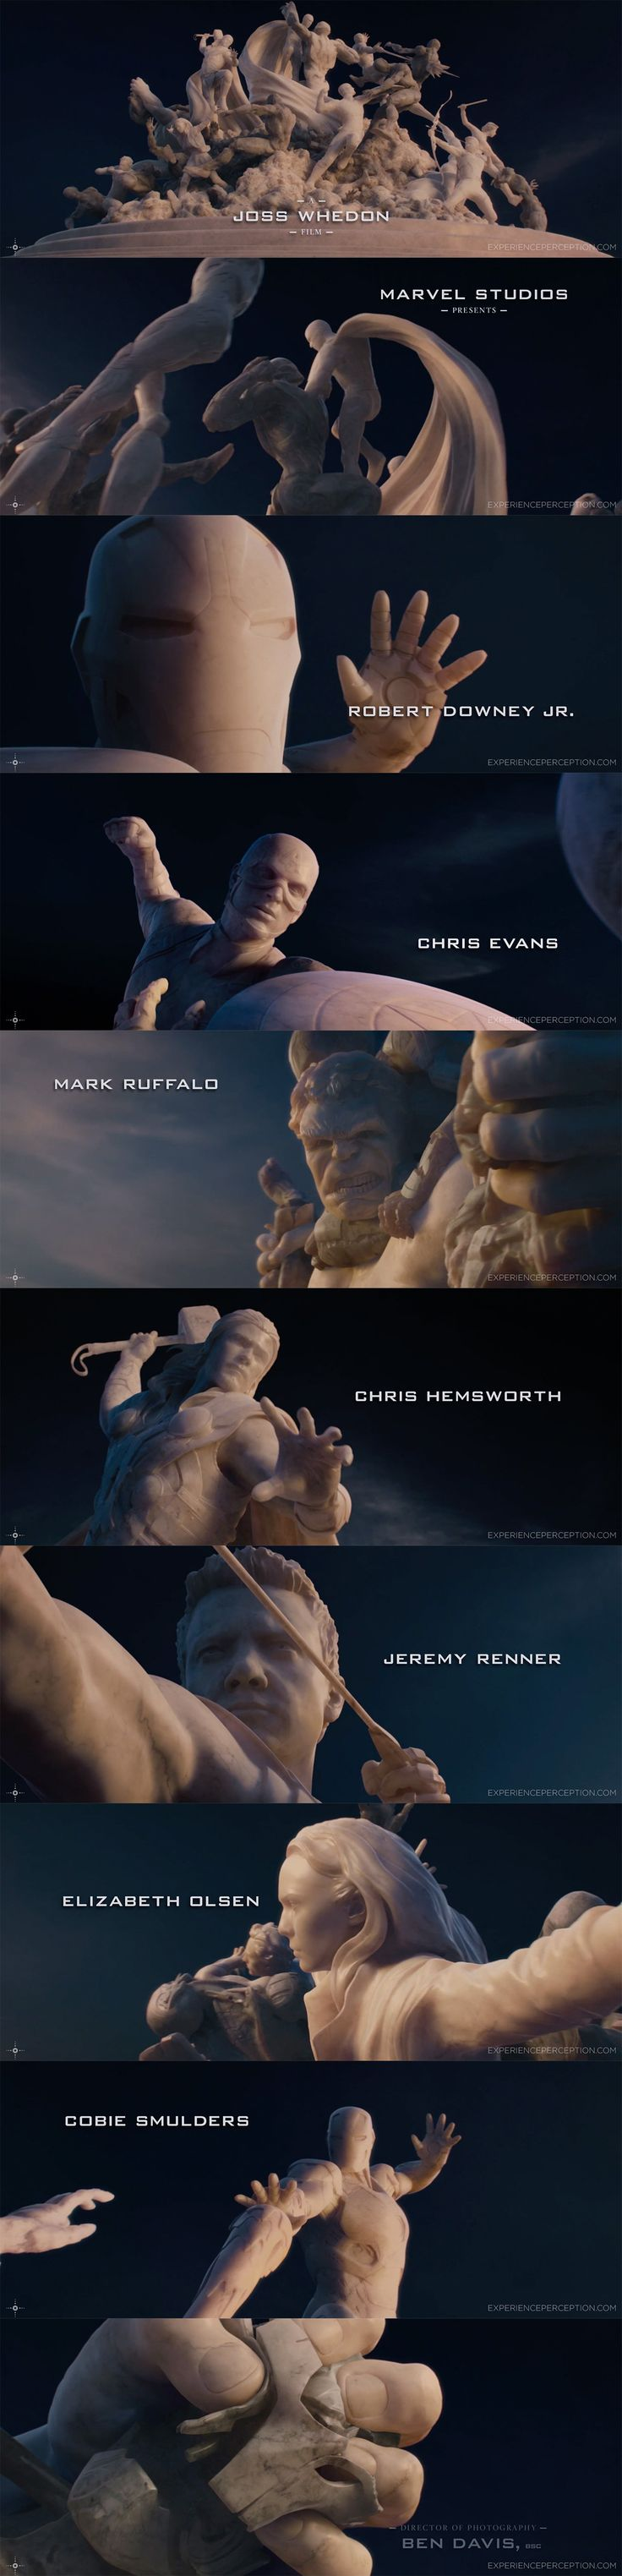 I like this title sequence for 'The Avengers' as it involves the actors and creates them as rock figures, which is very complex and very powerful which emphasises the strength of the characters.